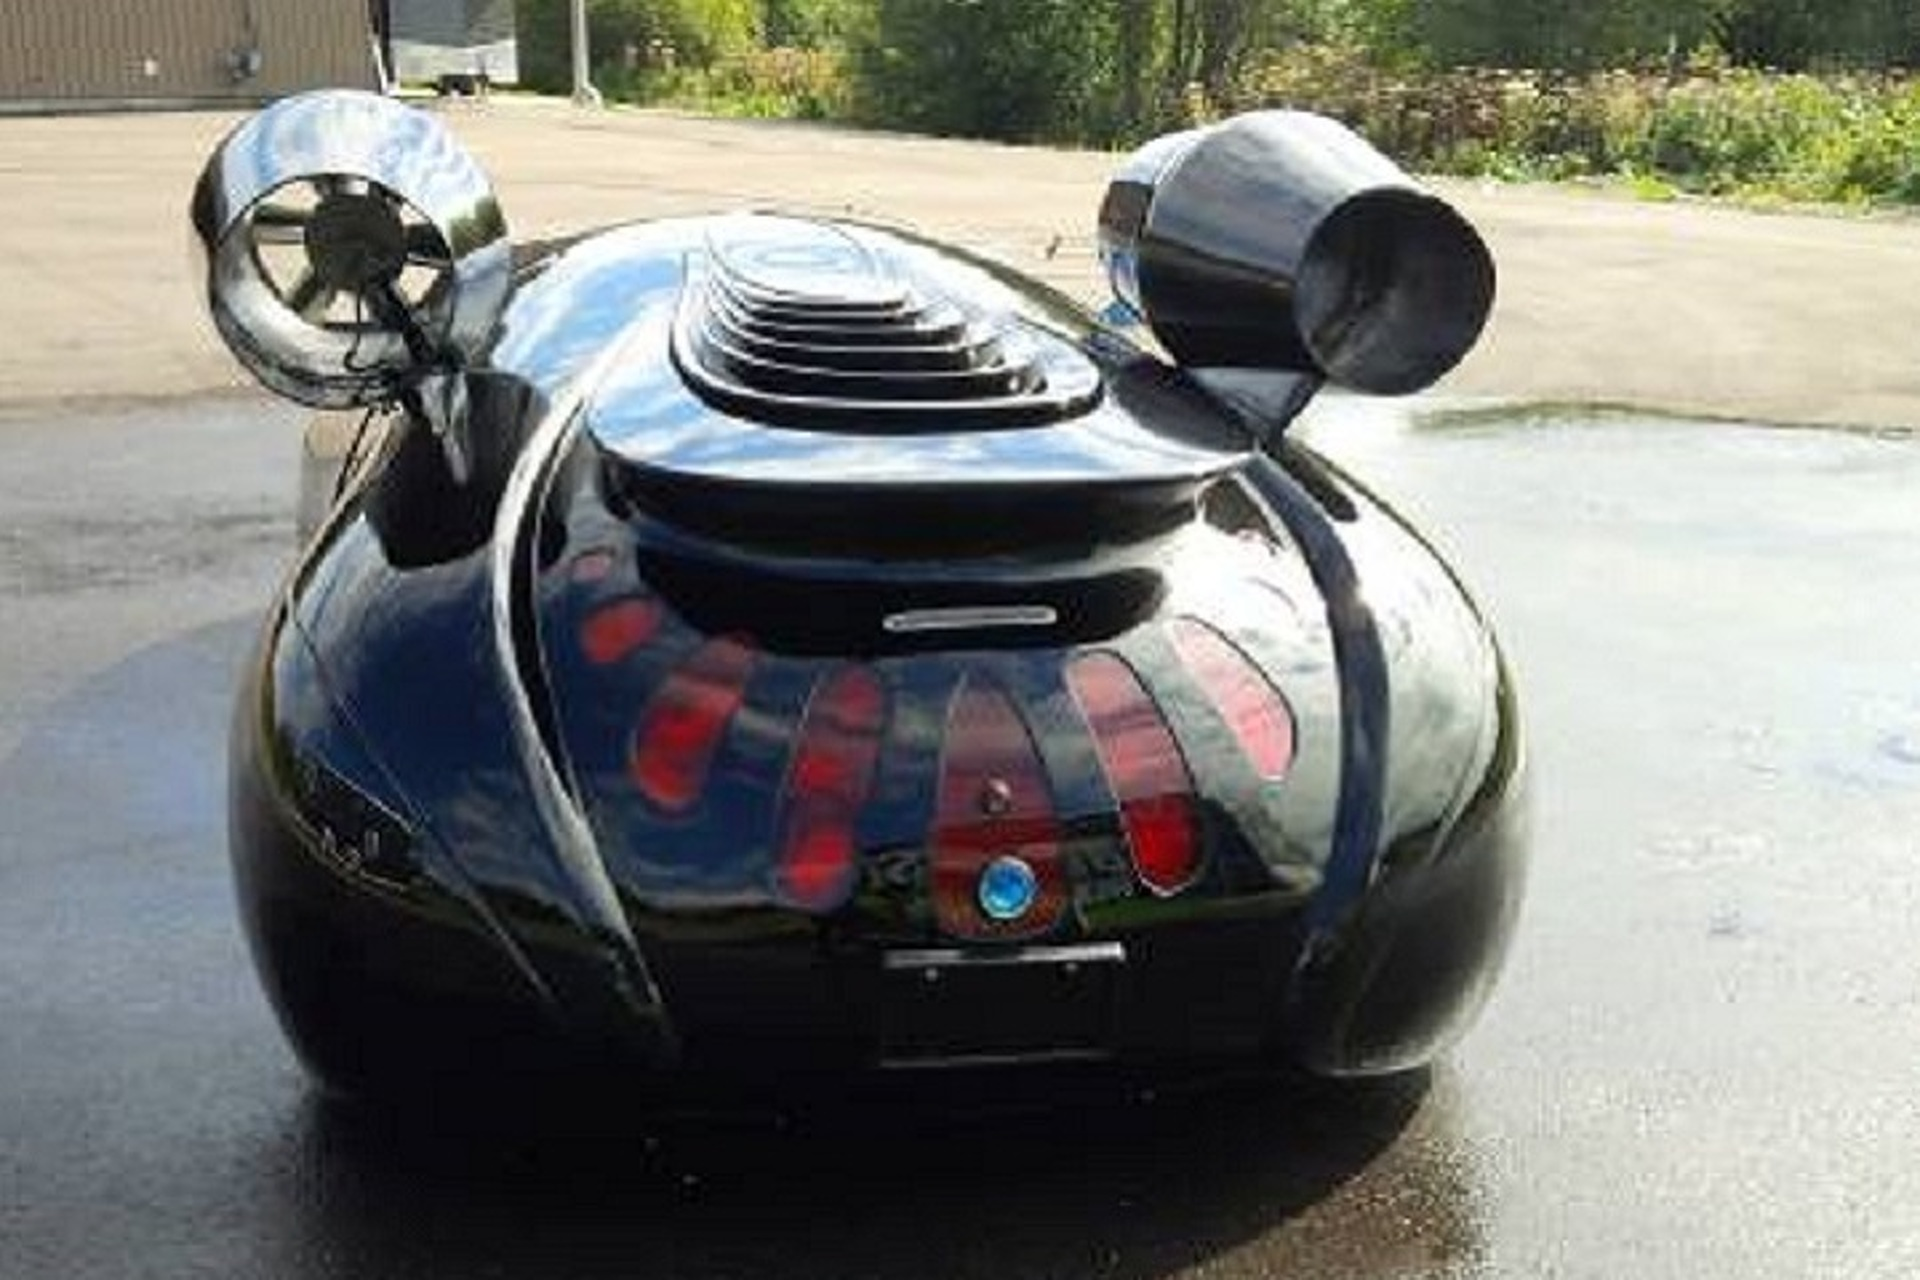 Spaceship-Like ETV Electric Car Can Be Yours For $75K